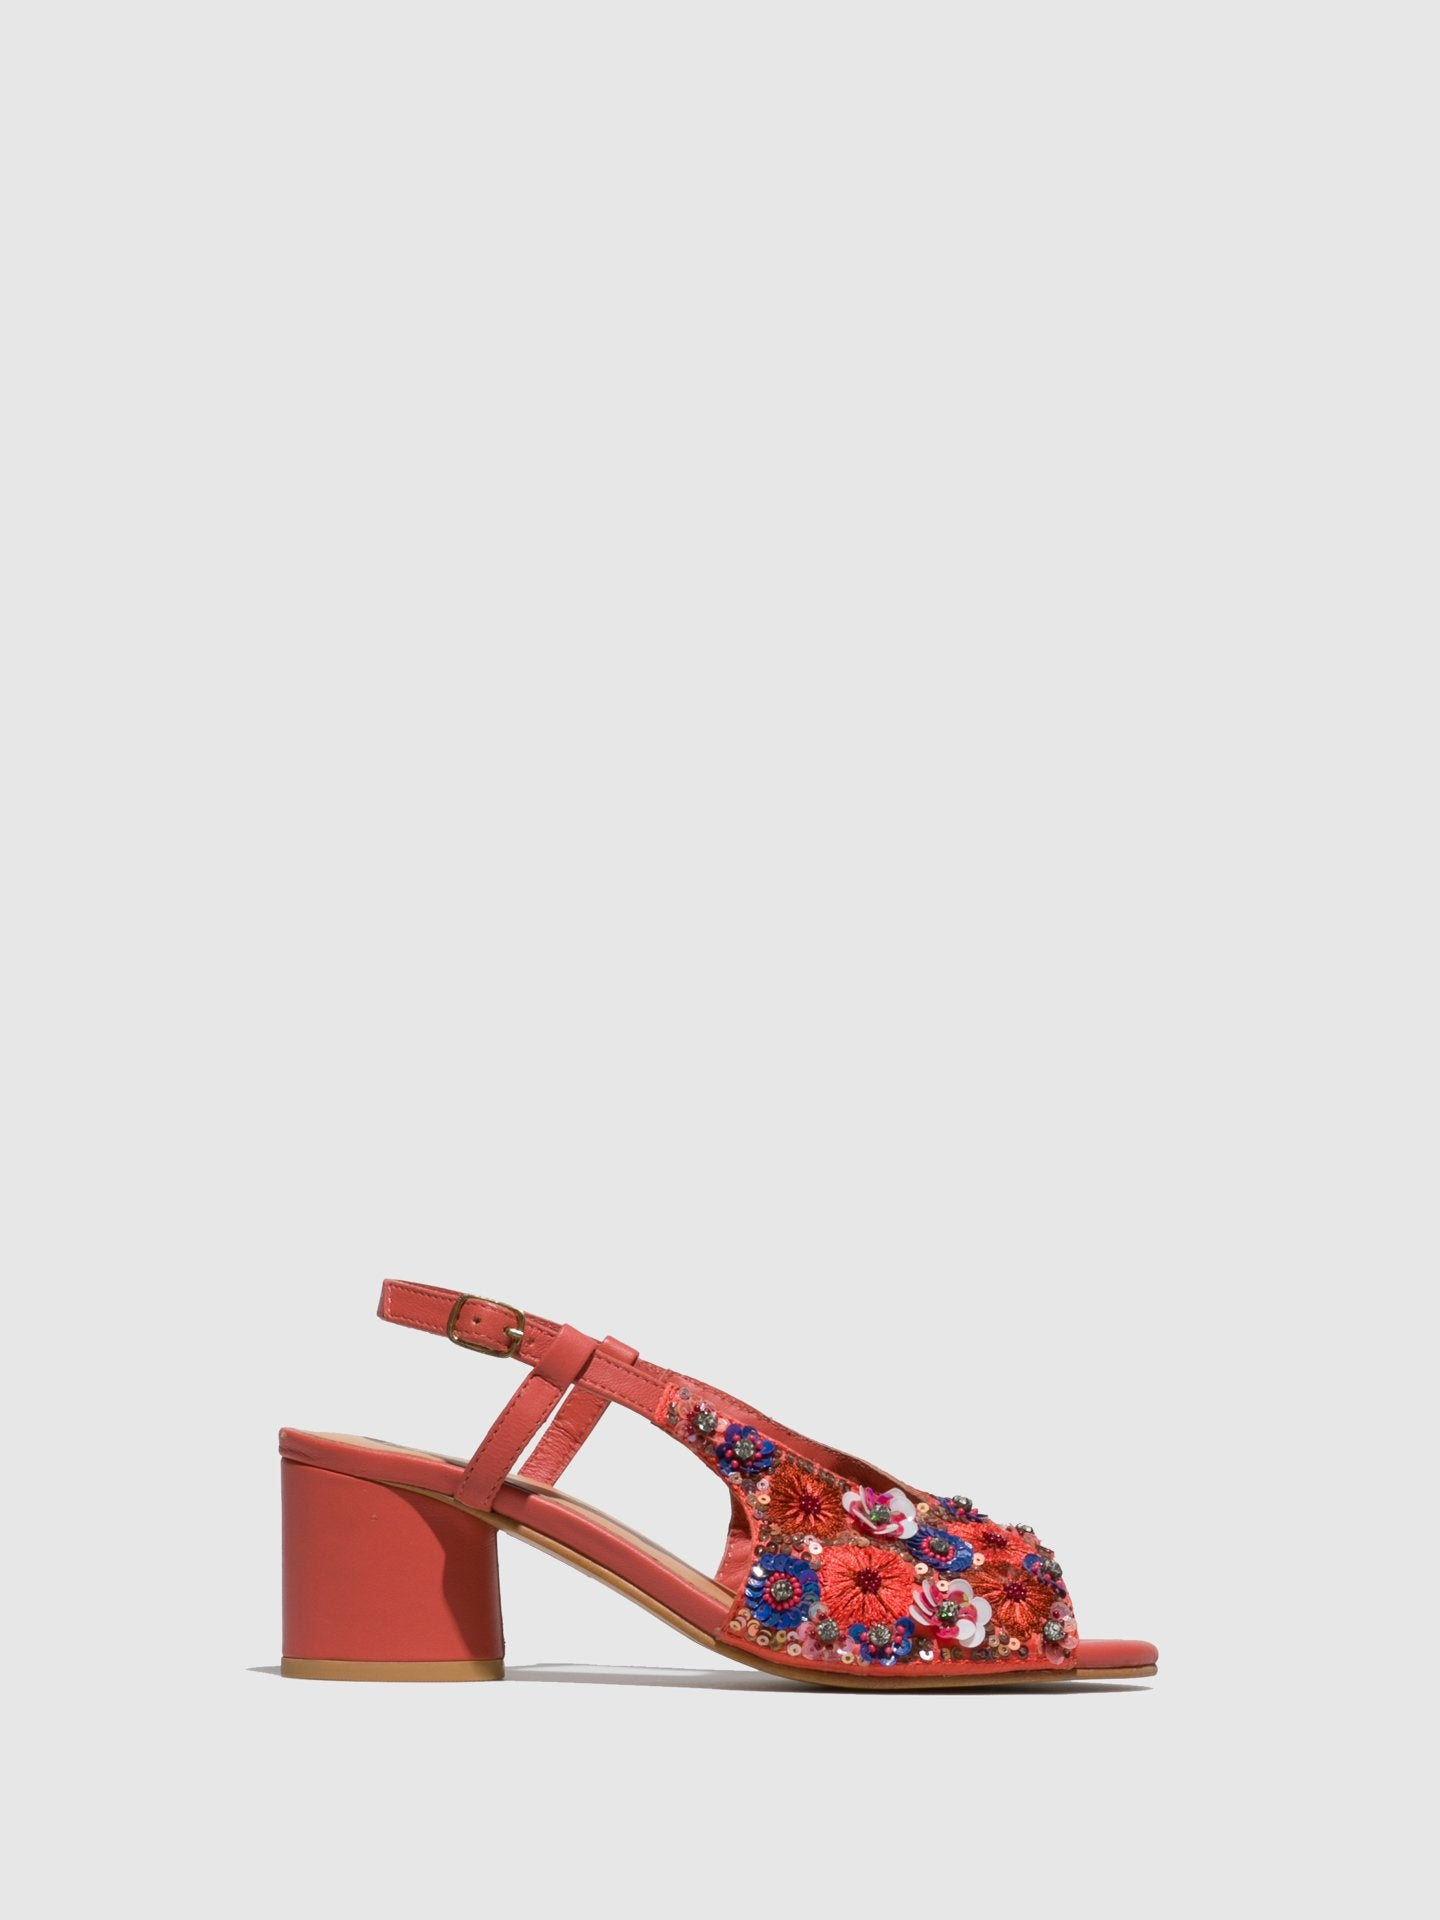 Parodi Sunshine Coral Sling-Back Sandals